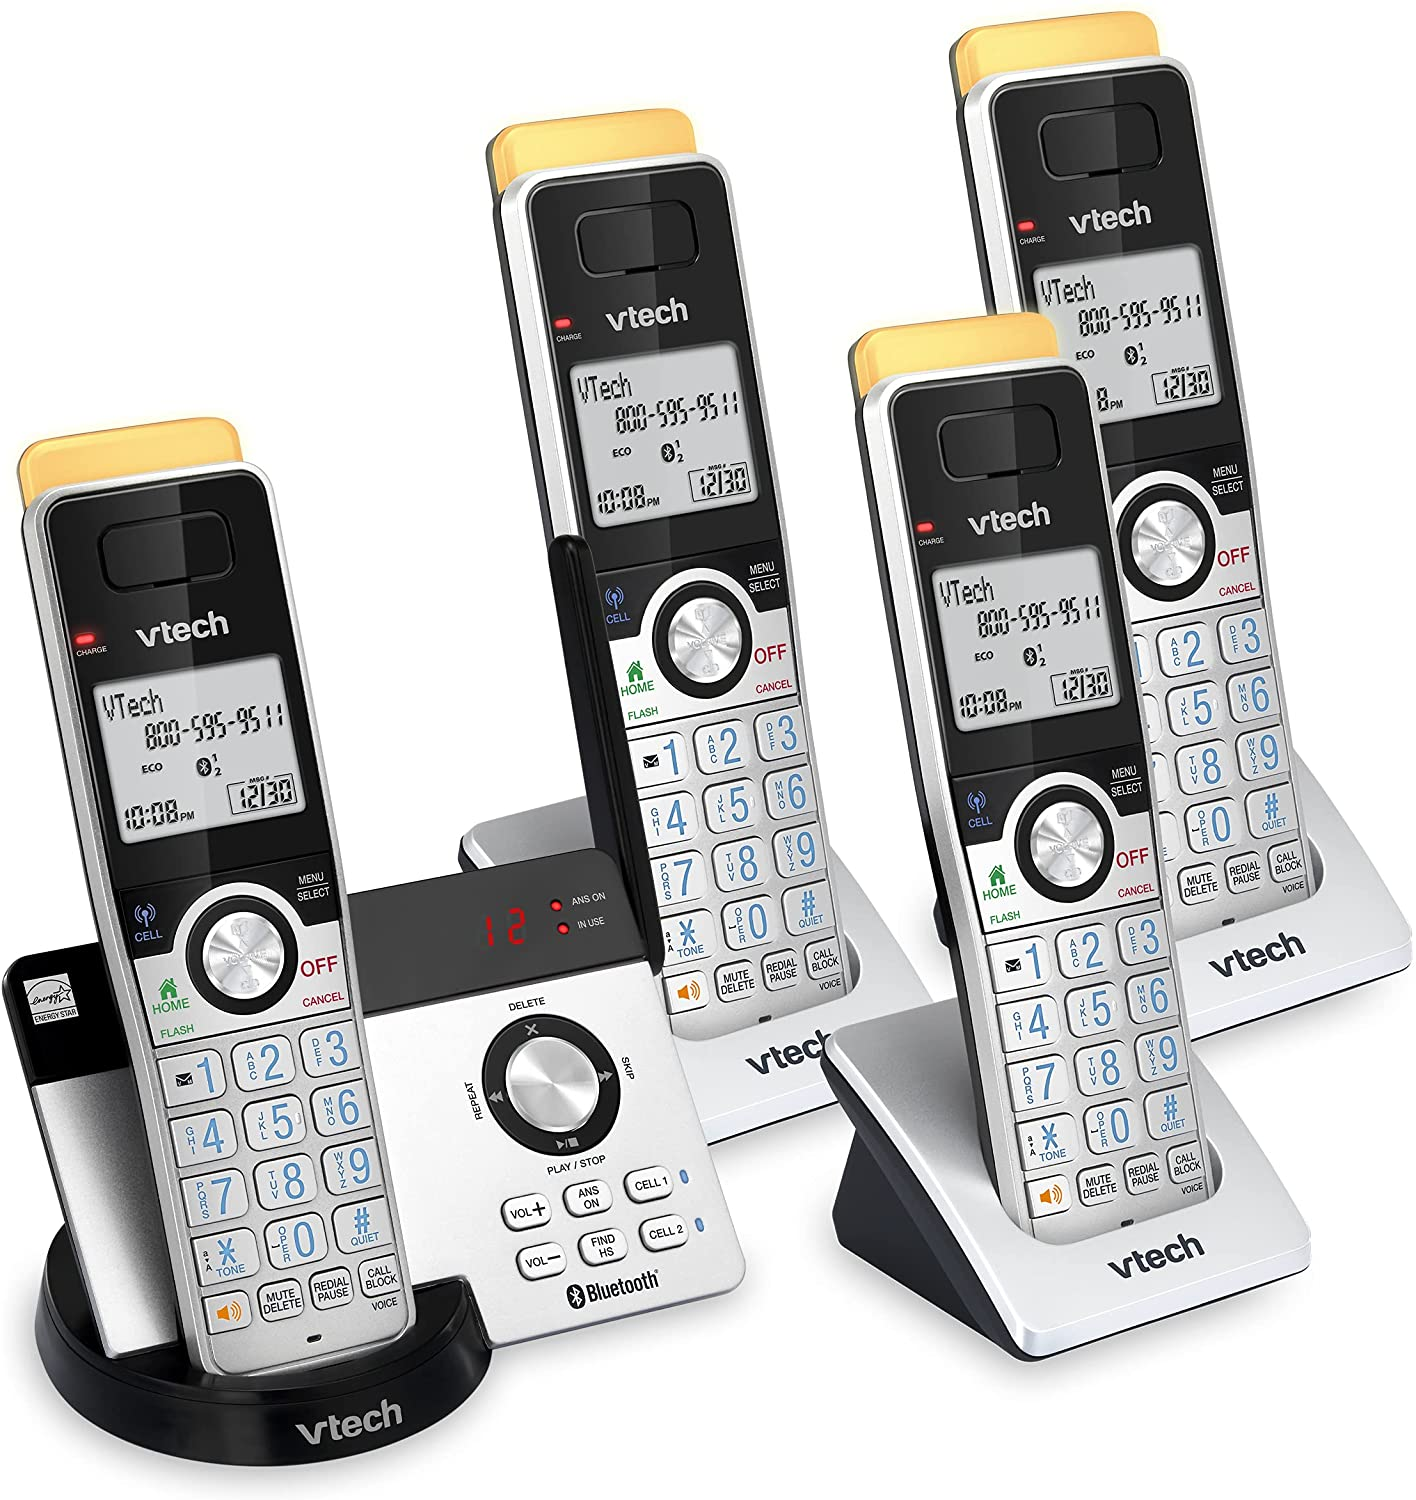 VTECH IS8121-4 Super Long Range up to 2300 Feet DECT 6.0 Bluetooth 4 Handset Cordless Phone for Home with Answering Machine, Call Blocking, Connect to Cell, Intercom and Expandable to 5 Handsets : Office Products